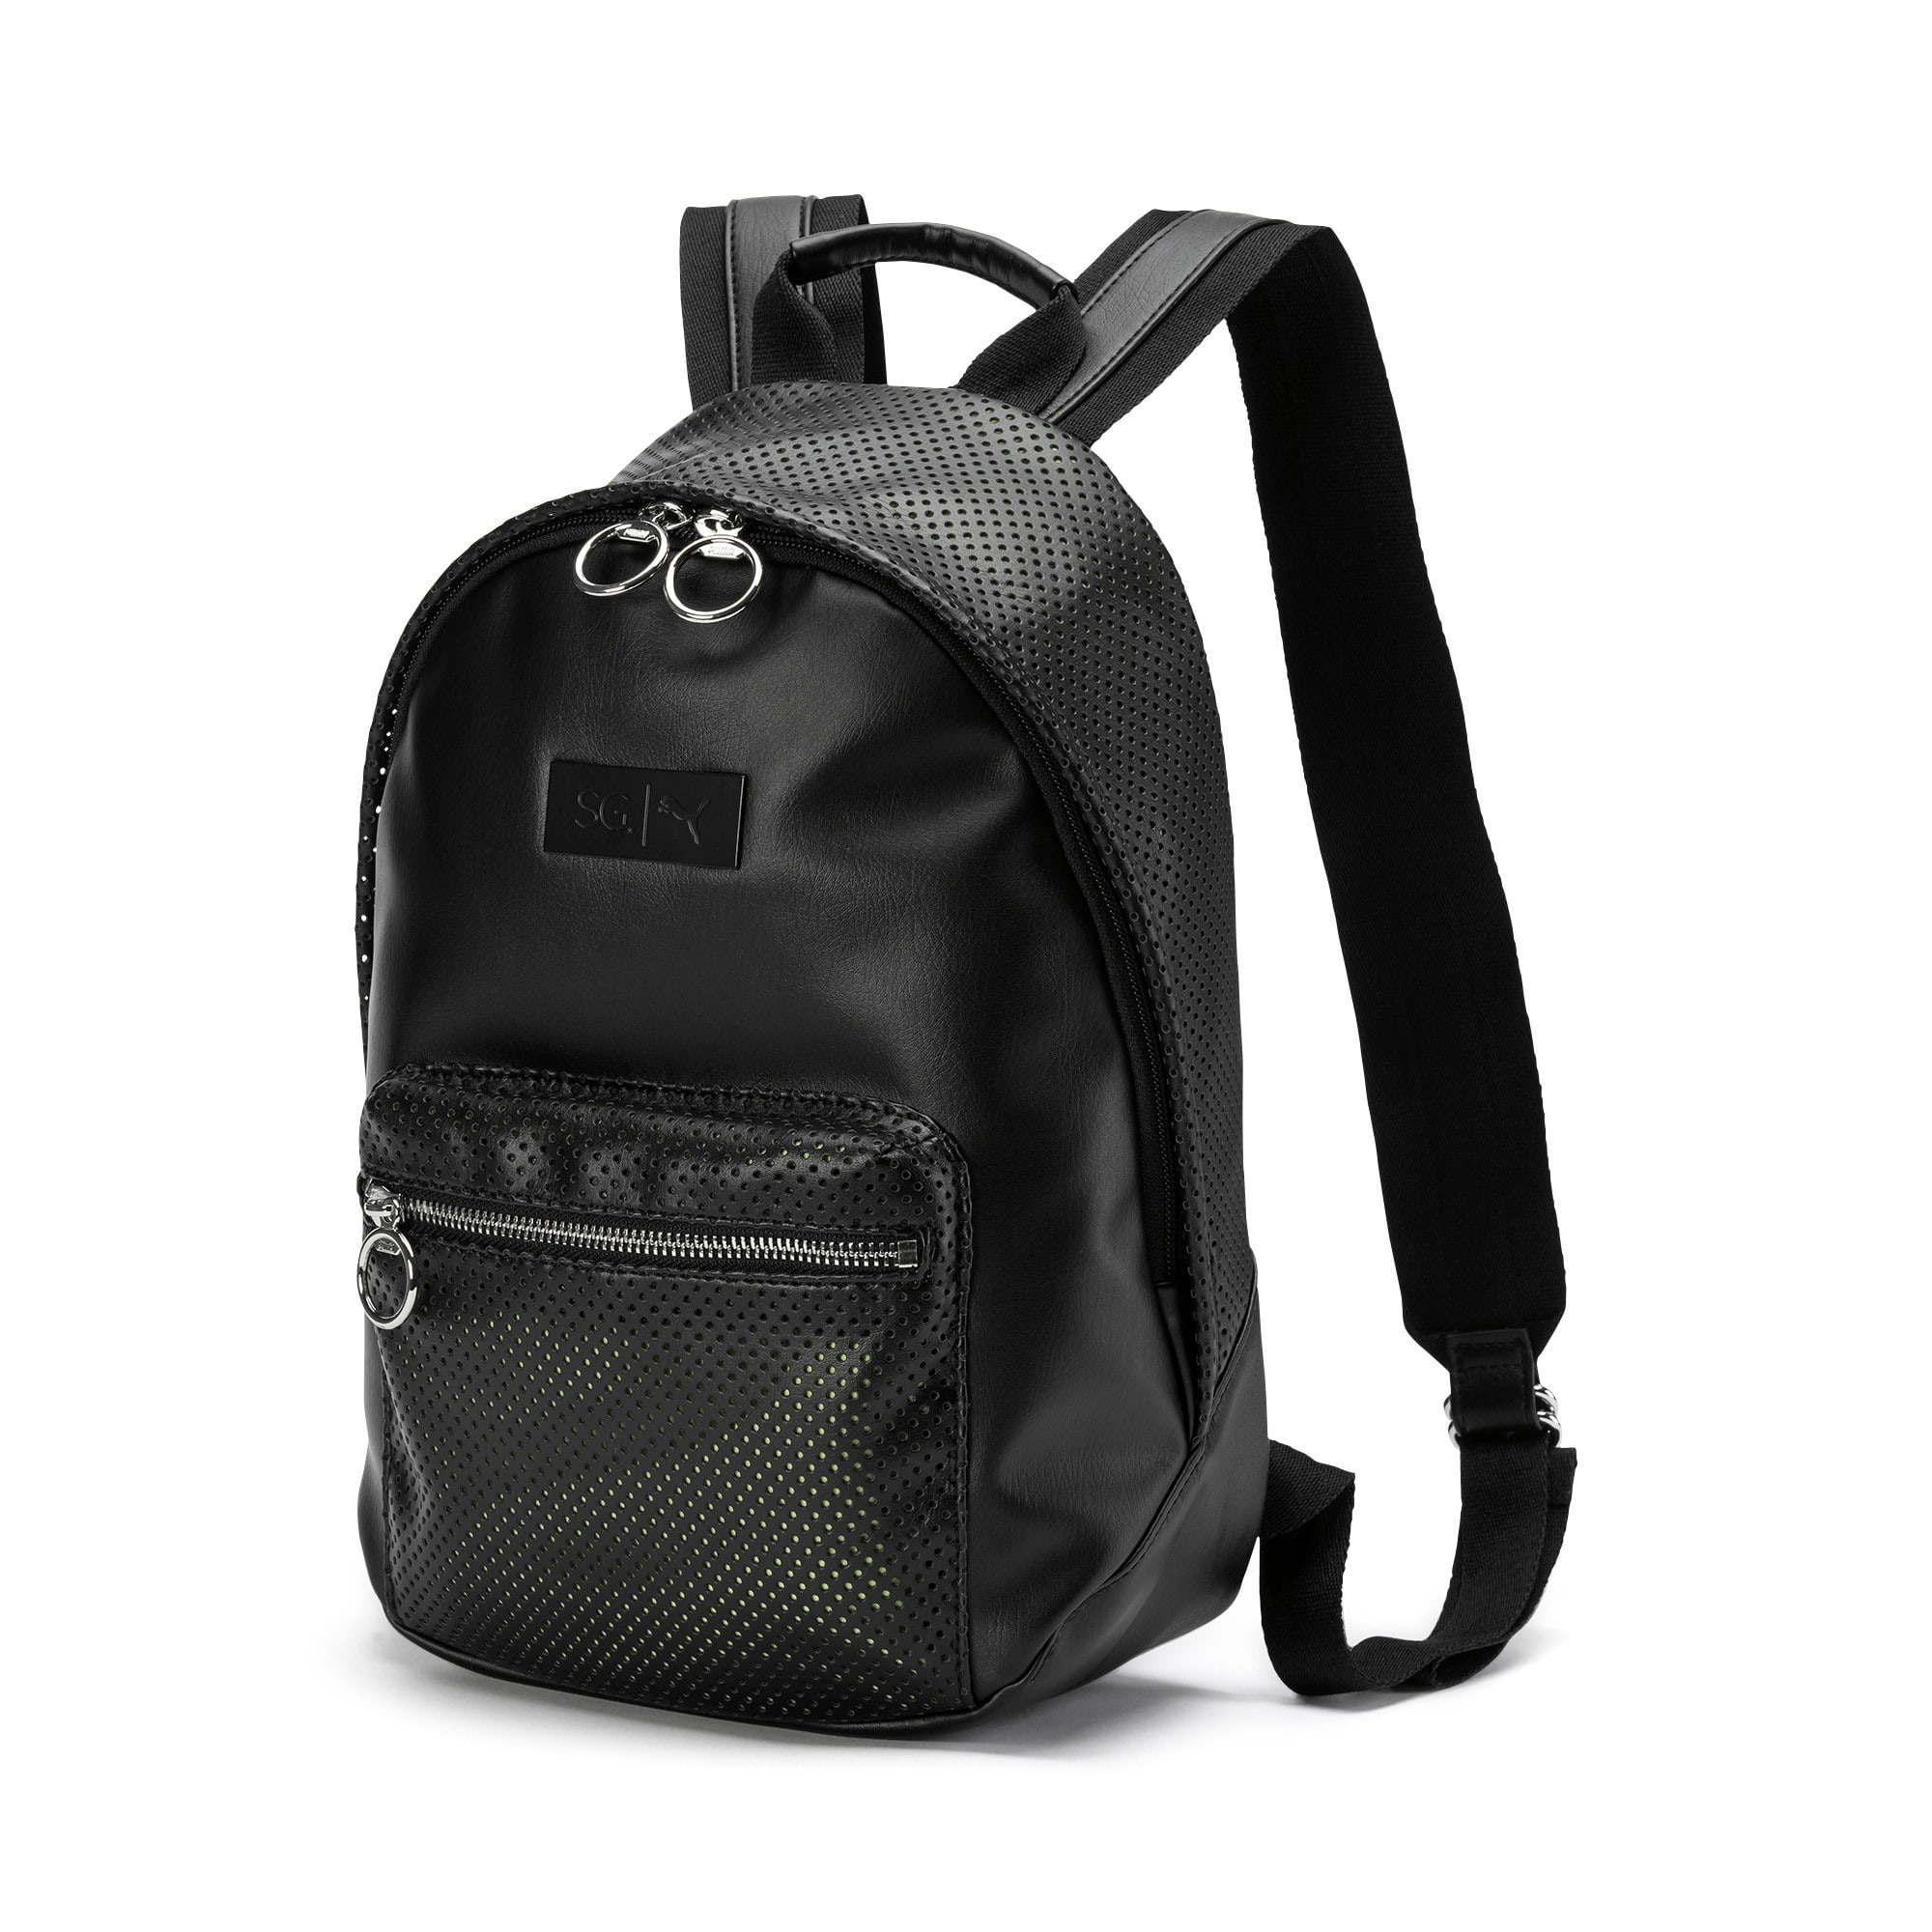 Thumbnail 1 of SG x PUMA Style Backpack, Puma Black, medium